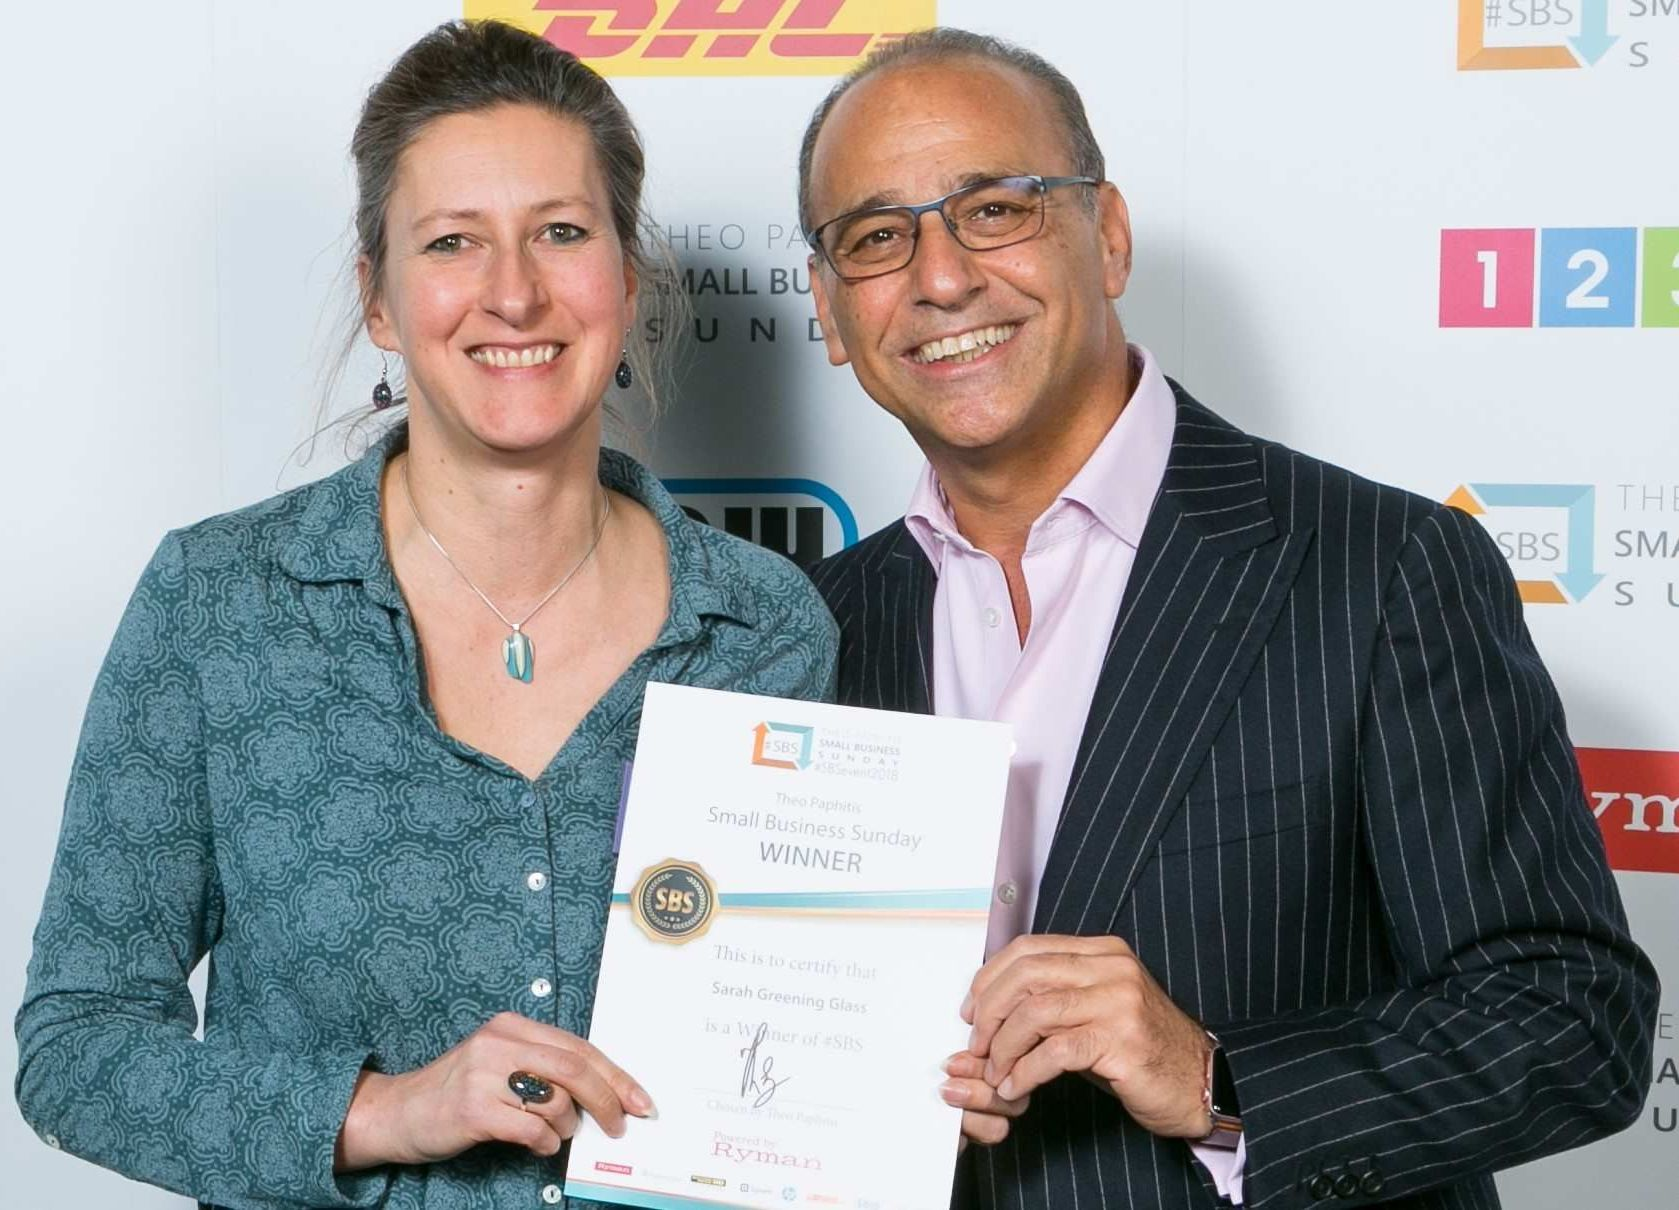 Photo with Theo Paphitis from BBC's Dragon's Den after he gave me a small business award in 2017